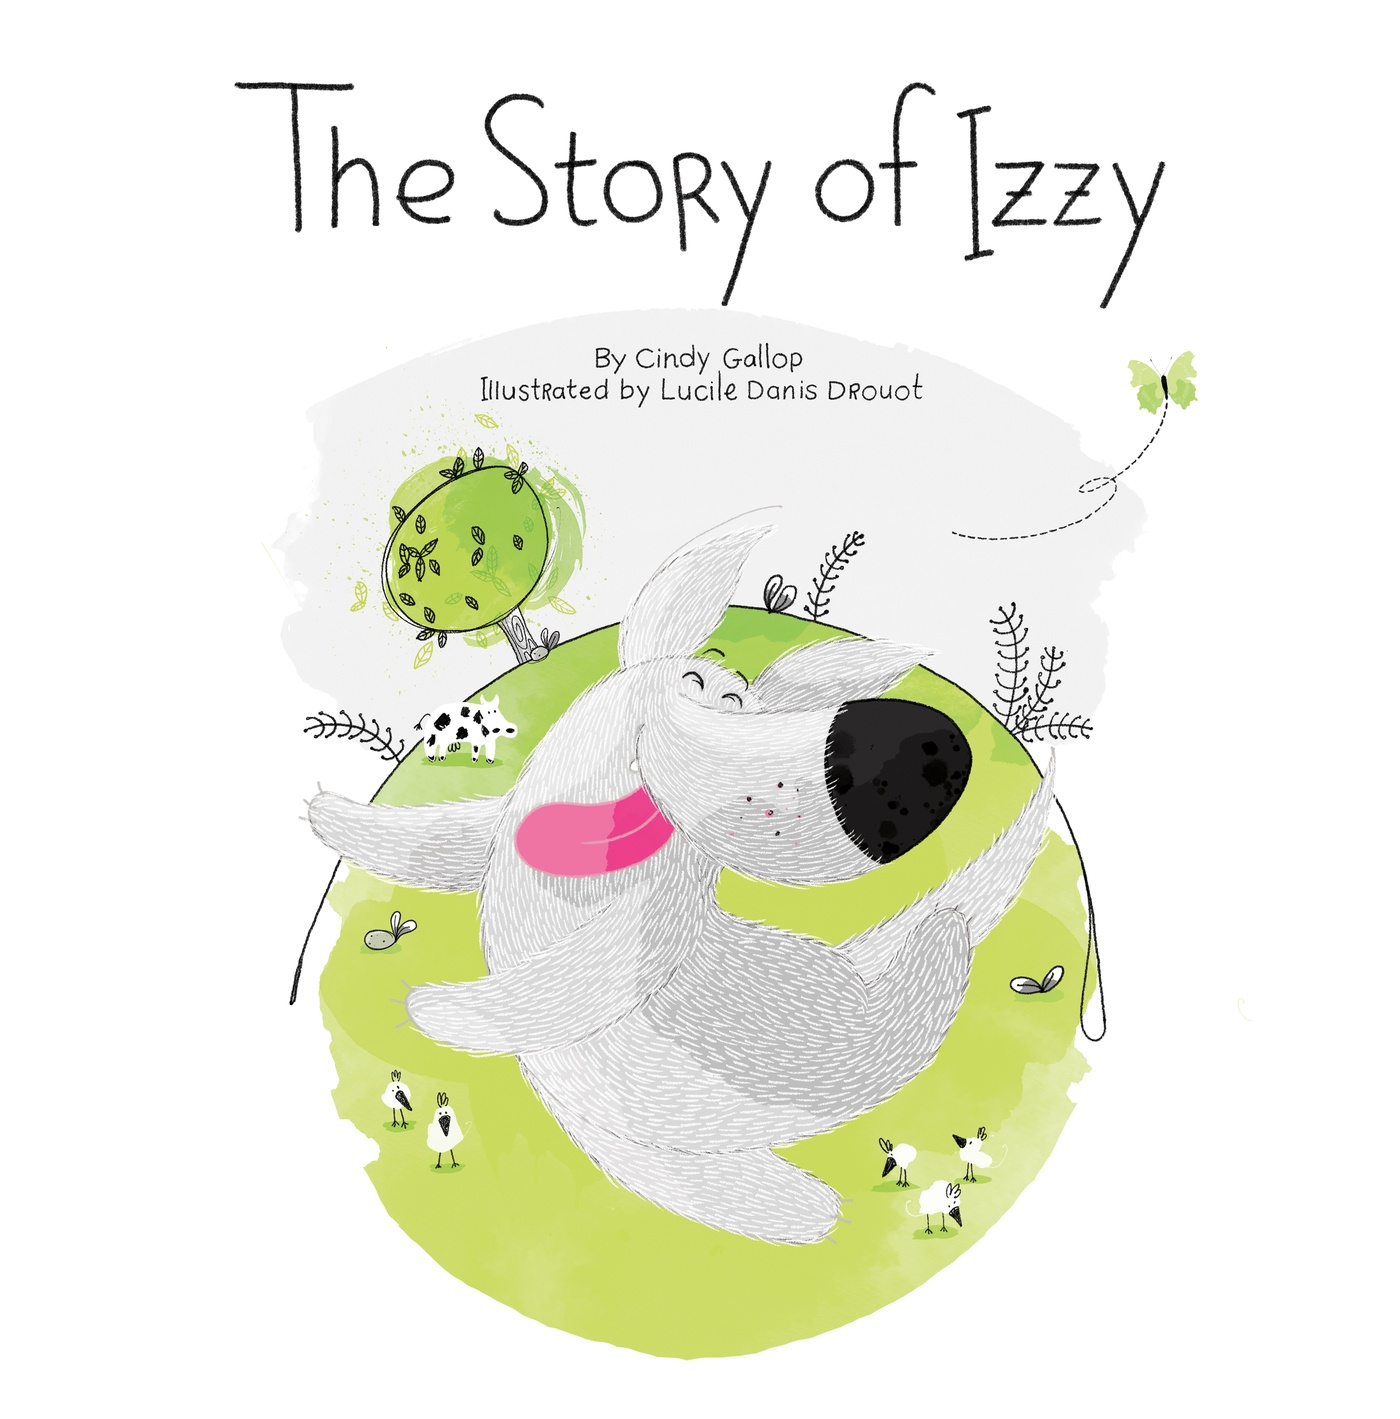 Lucile Danis Drouot - The Story Of Izzy